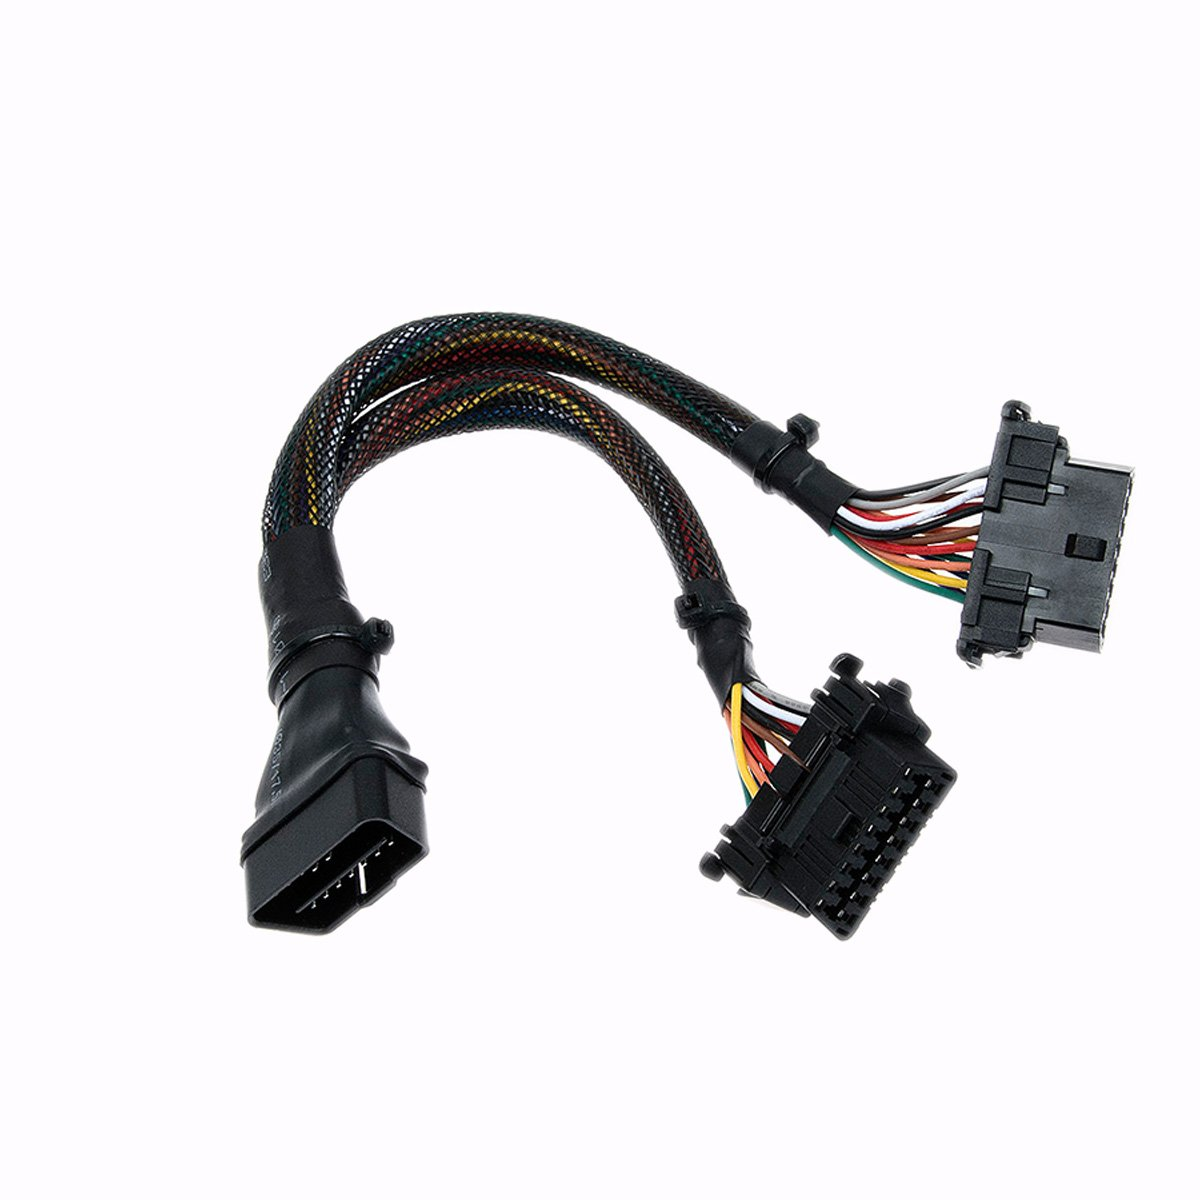 Fotag 16 Pin Obd2 Obdii Splitter Extension Cable Adapter Toyota Obd Connector Location Male To Female Y 1ft 30cm Automotive